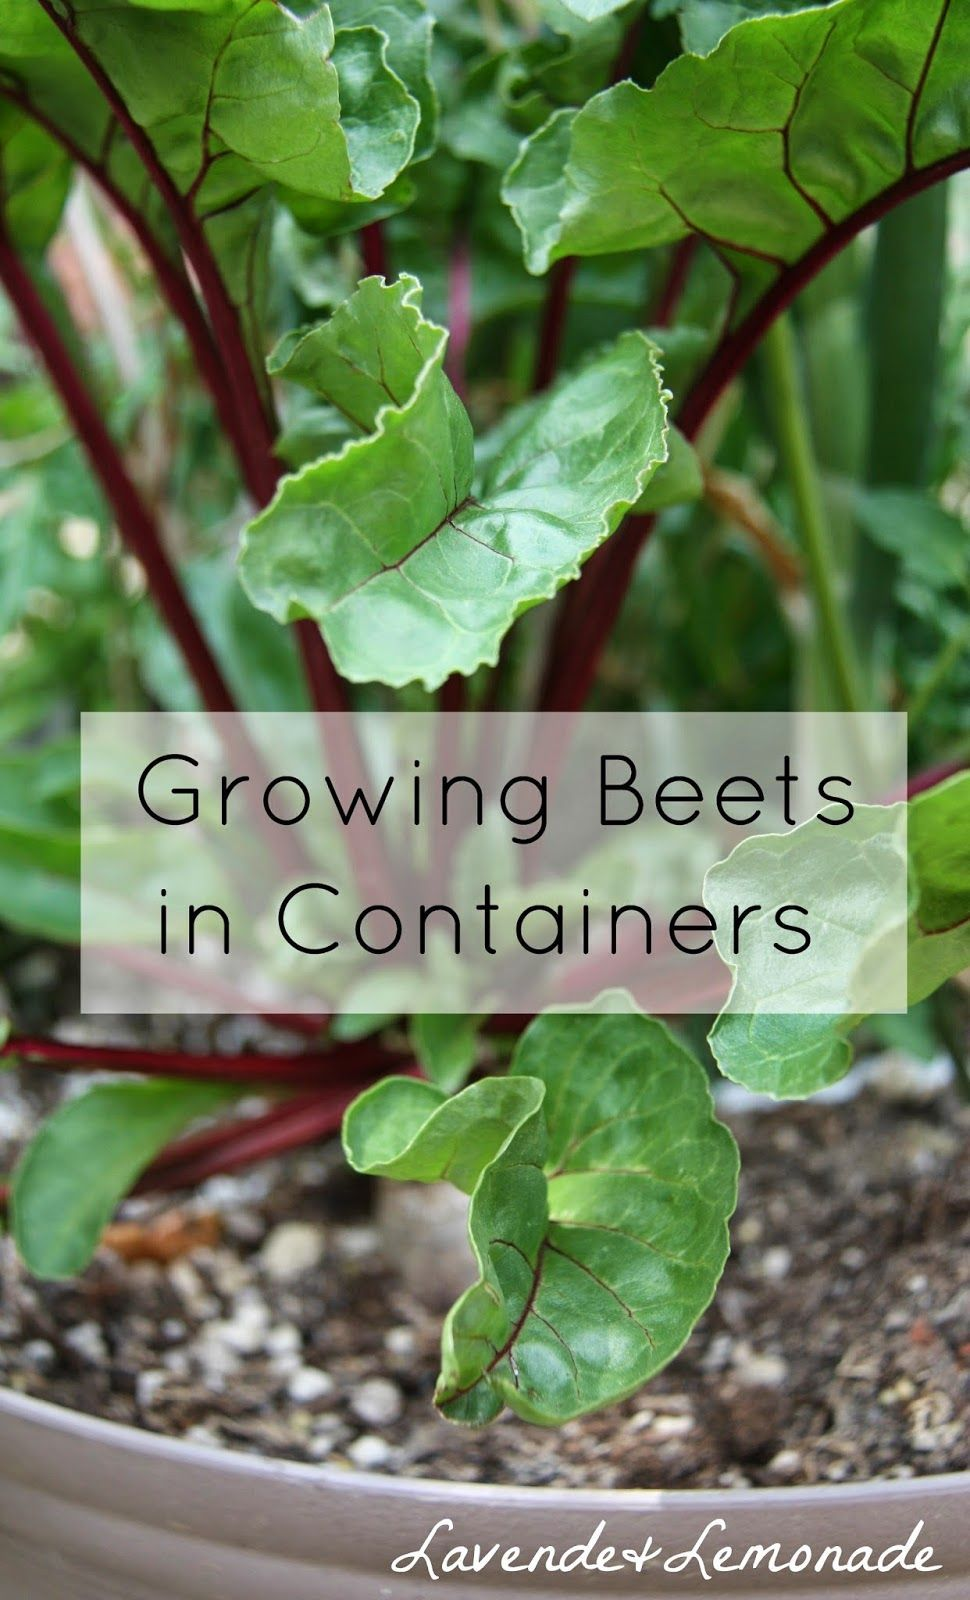 How To Grow Beets In Containers Apparently Very Easy Water Only Once Twice Week Grow Abundantly Eat Th Growing Beets Container Gardening Growing Vegetables